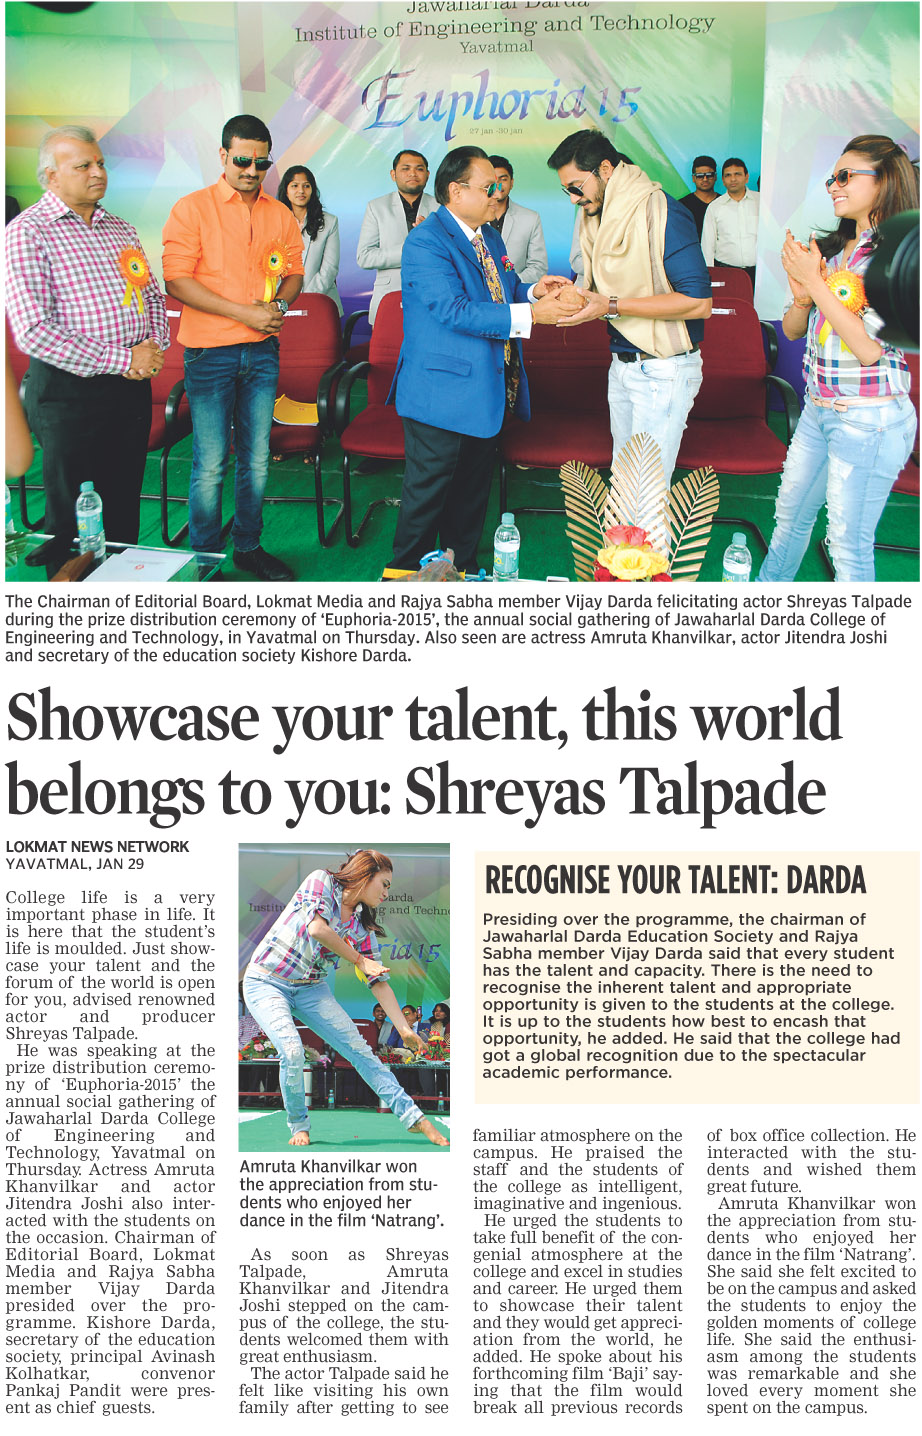 Showcase your talent, this world belongs to you: Shreyas Talpade